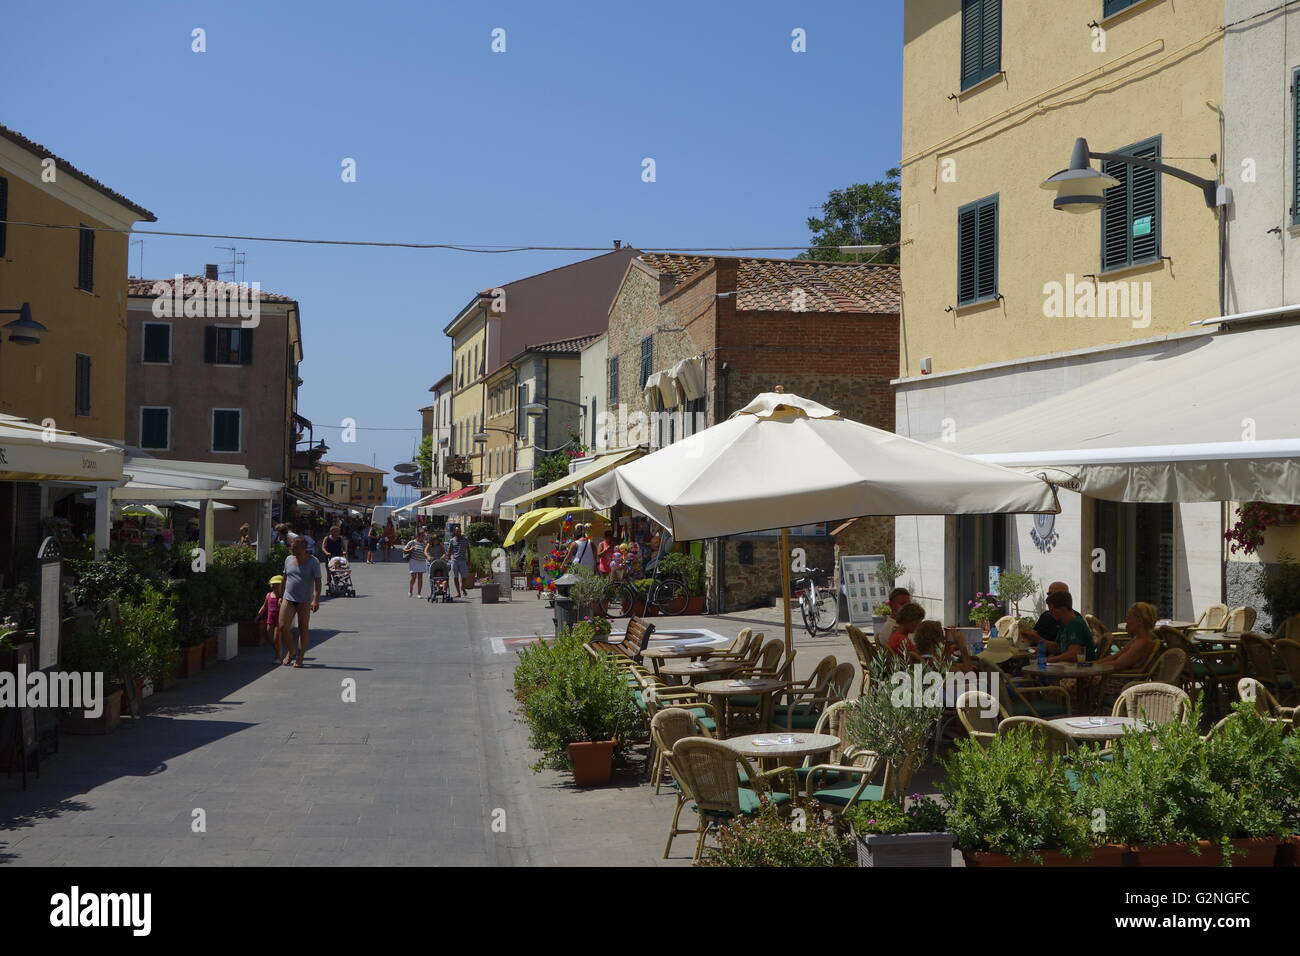 The pretty seaside town of Castiglione della Pescaia in the province of Grosseto, Tuscany Italy. Stock Photo